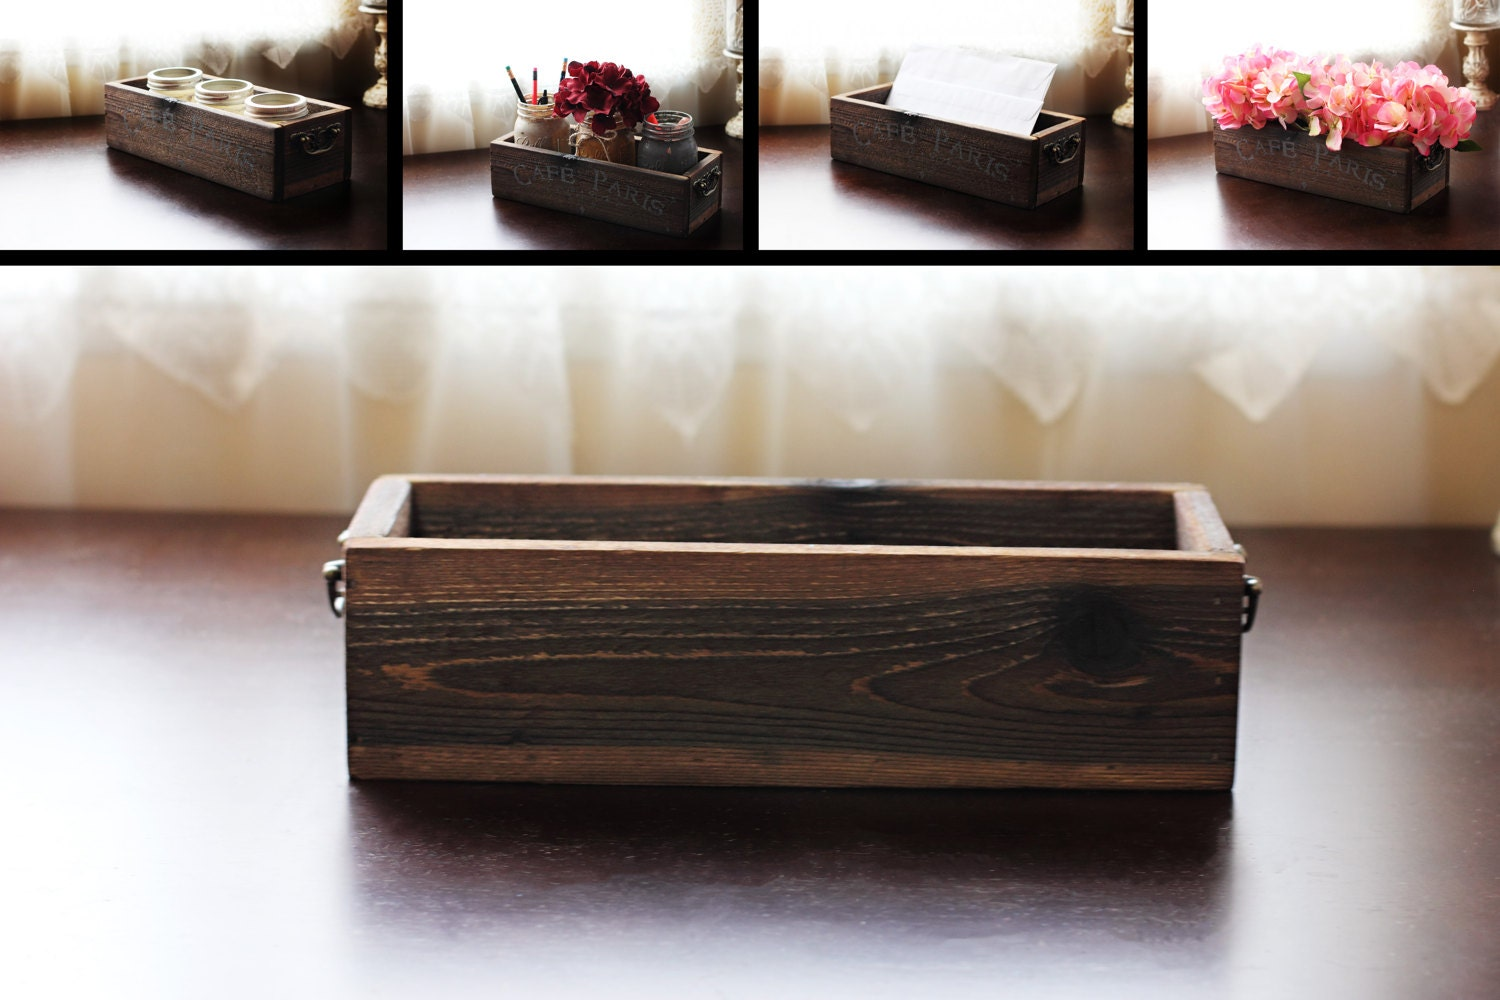 Rustic Wooden Box Mail Holder Wedding Centerpiece Candle